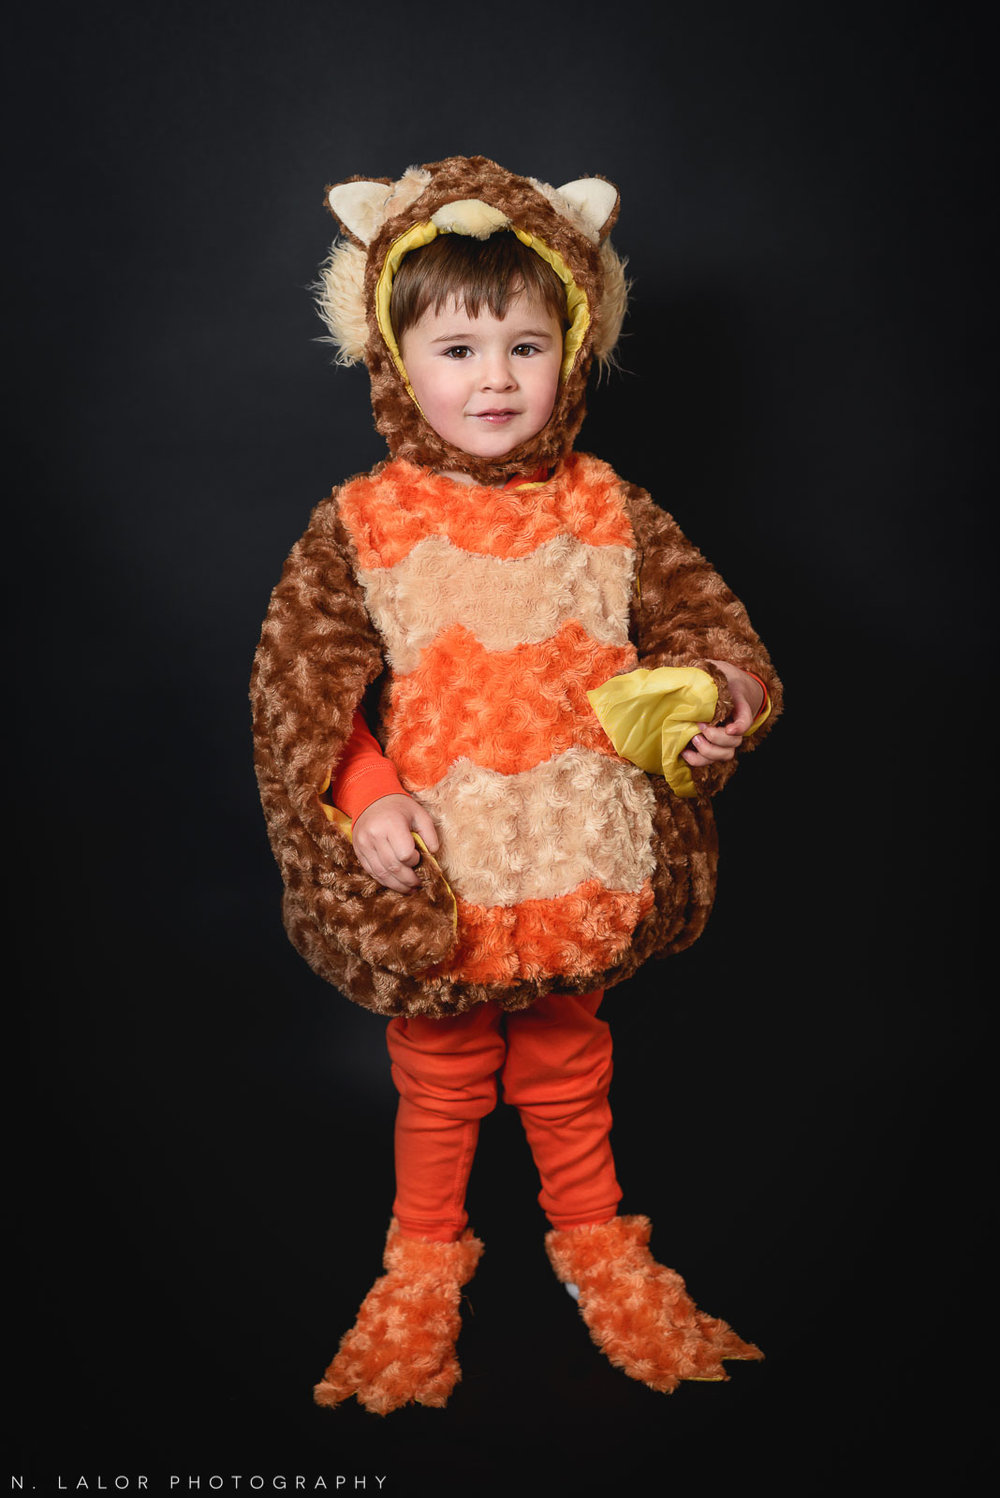 nlalor-photography-2016-10-29-halloween-portraits-watermarked-27.jpg